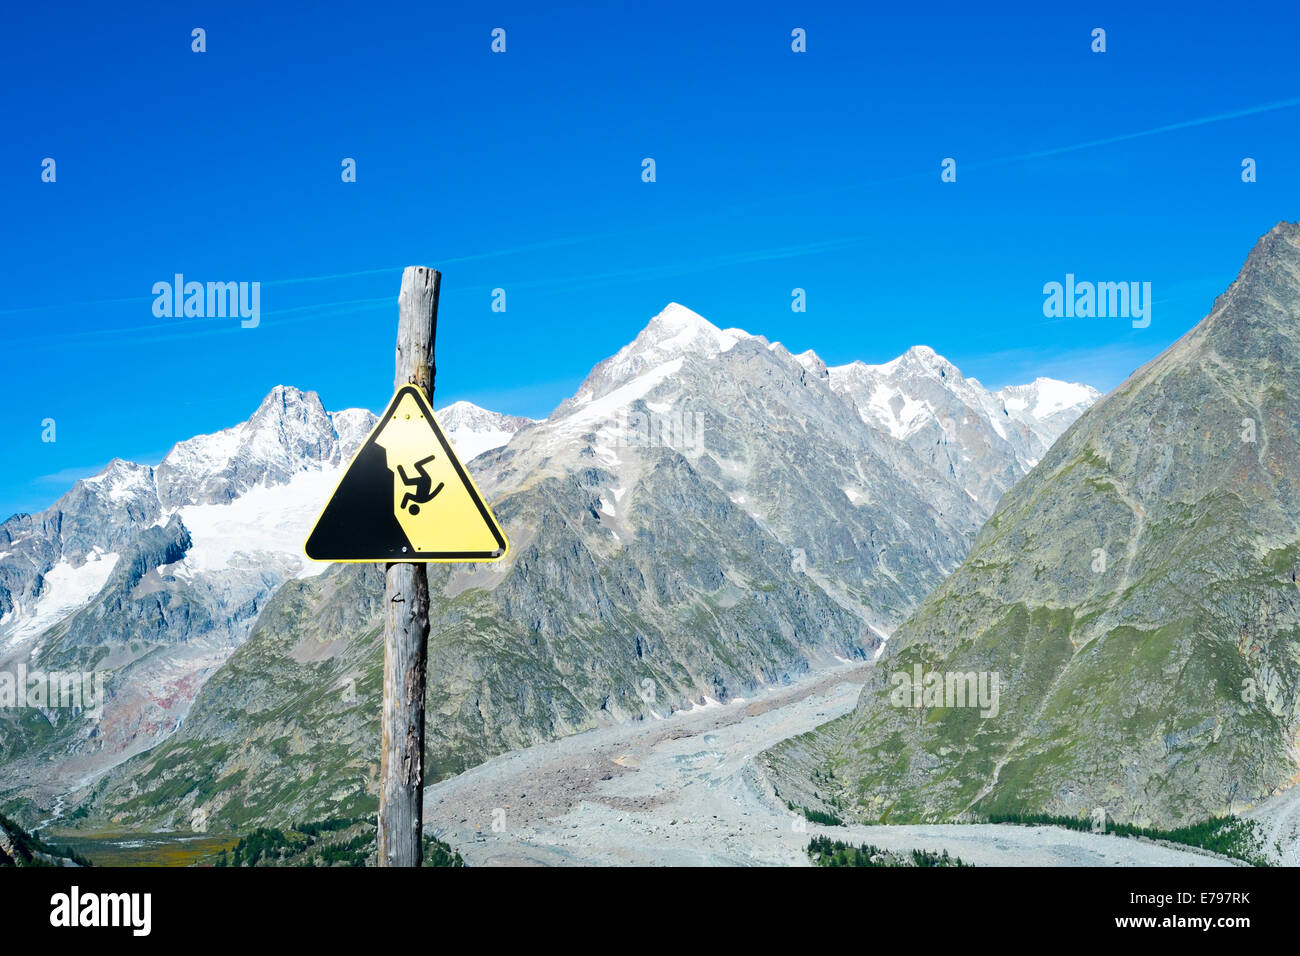 COMBAL, ITALY, AUGUST 28: Slippage danger sign with Miage Glacier and Combal peaks in the background. The area is - Stock Image